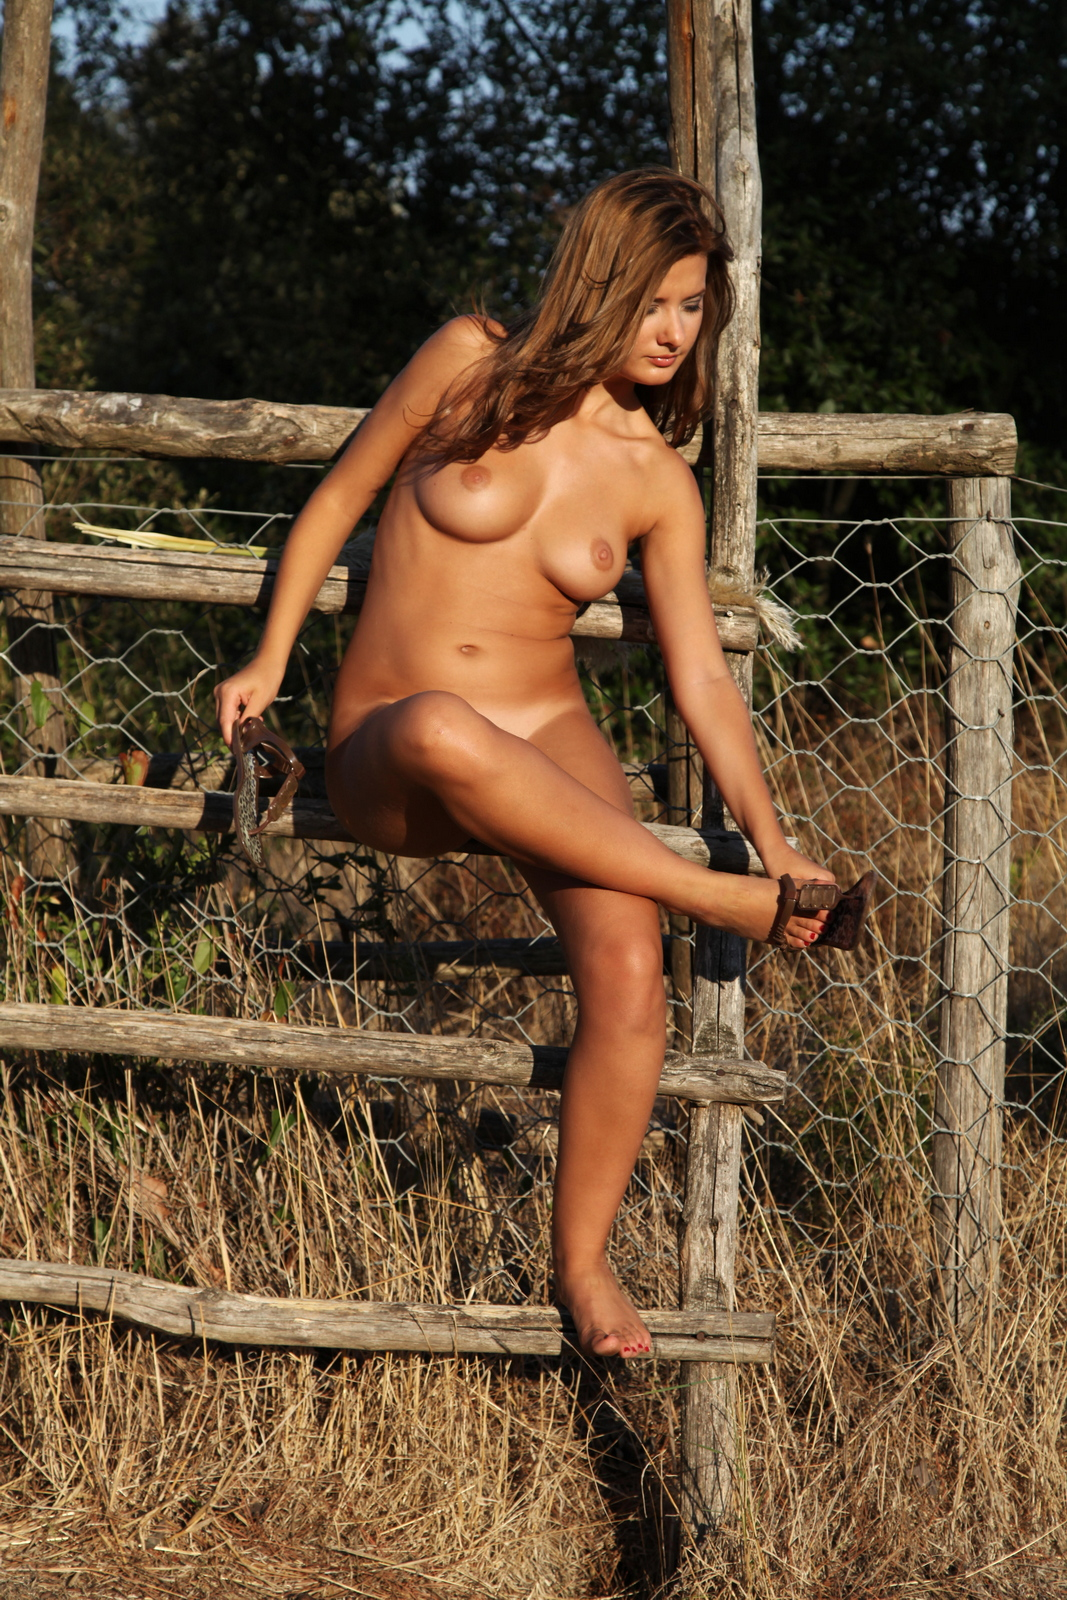 edwige-a-boobs-naked-outdoor-woods-metart-25